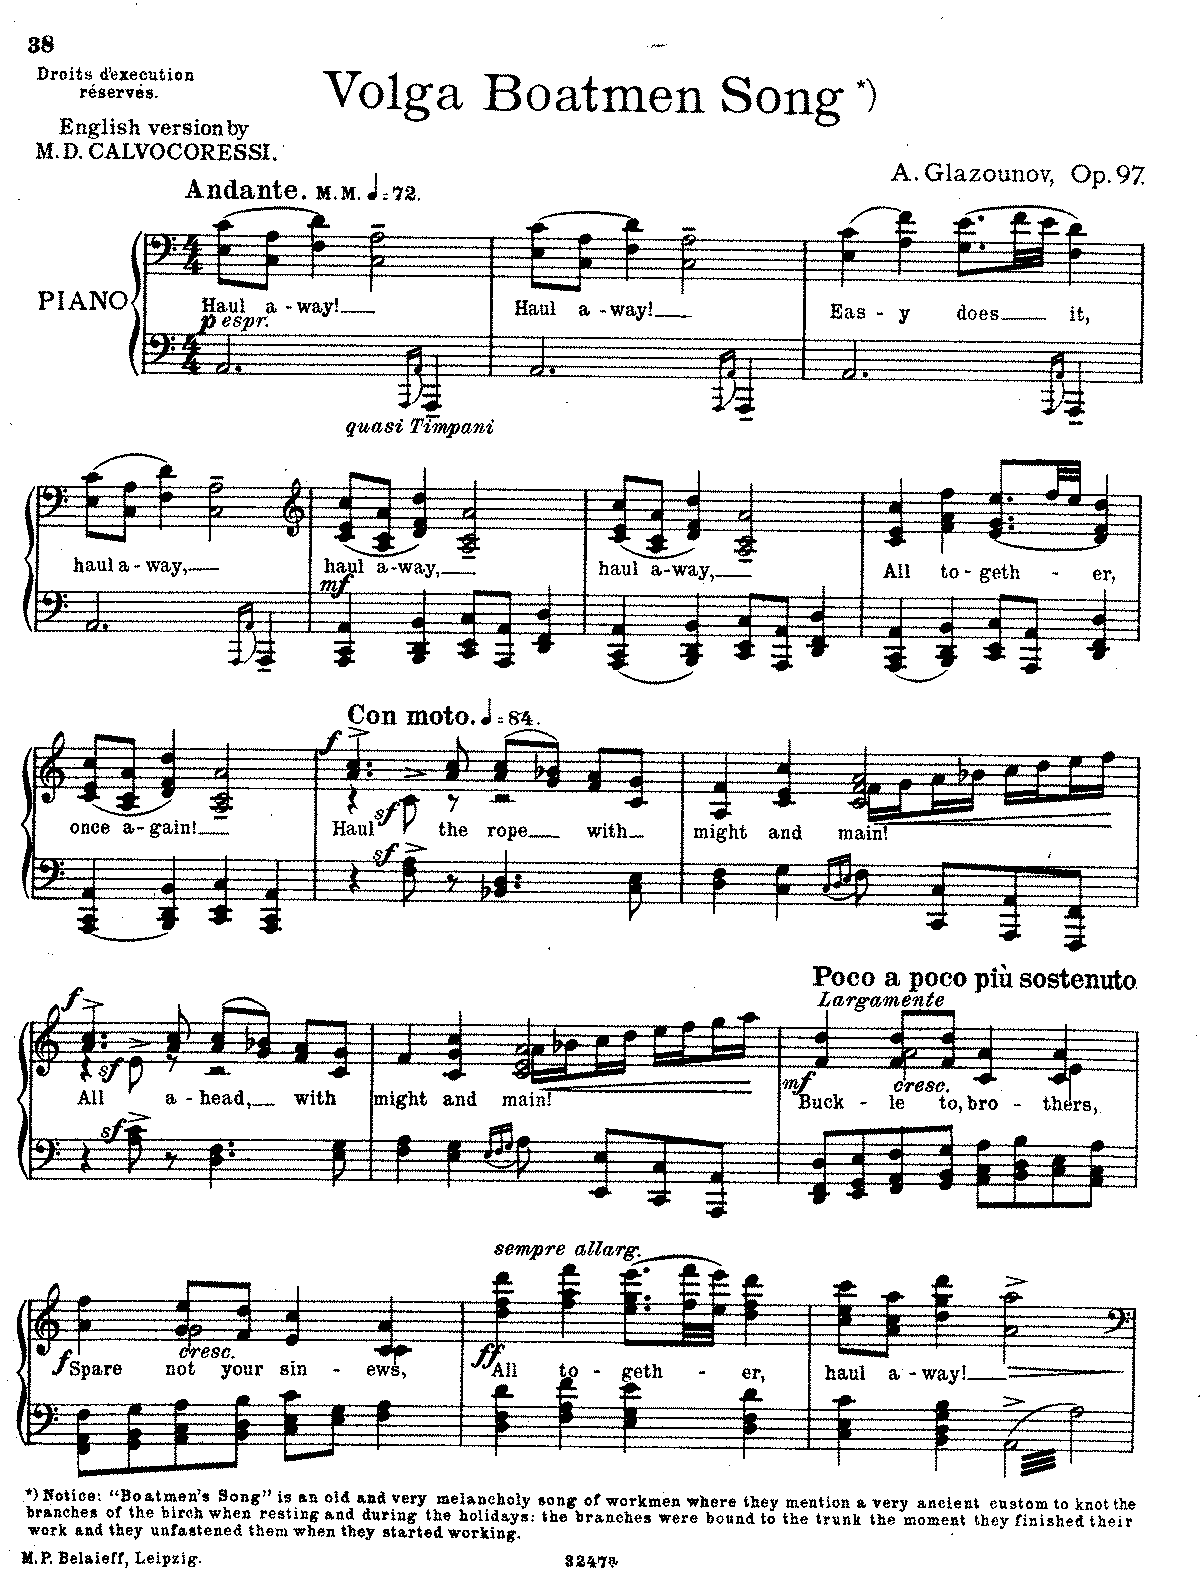 Glazunov - Op.97 - Song of the Volga Boatmen.pdf